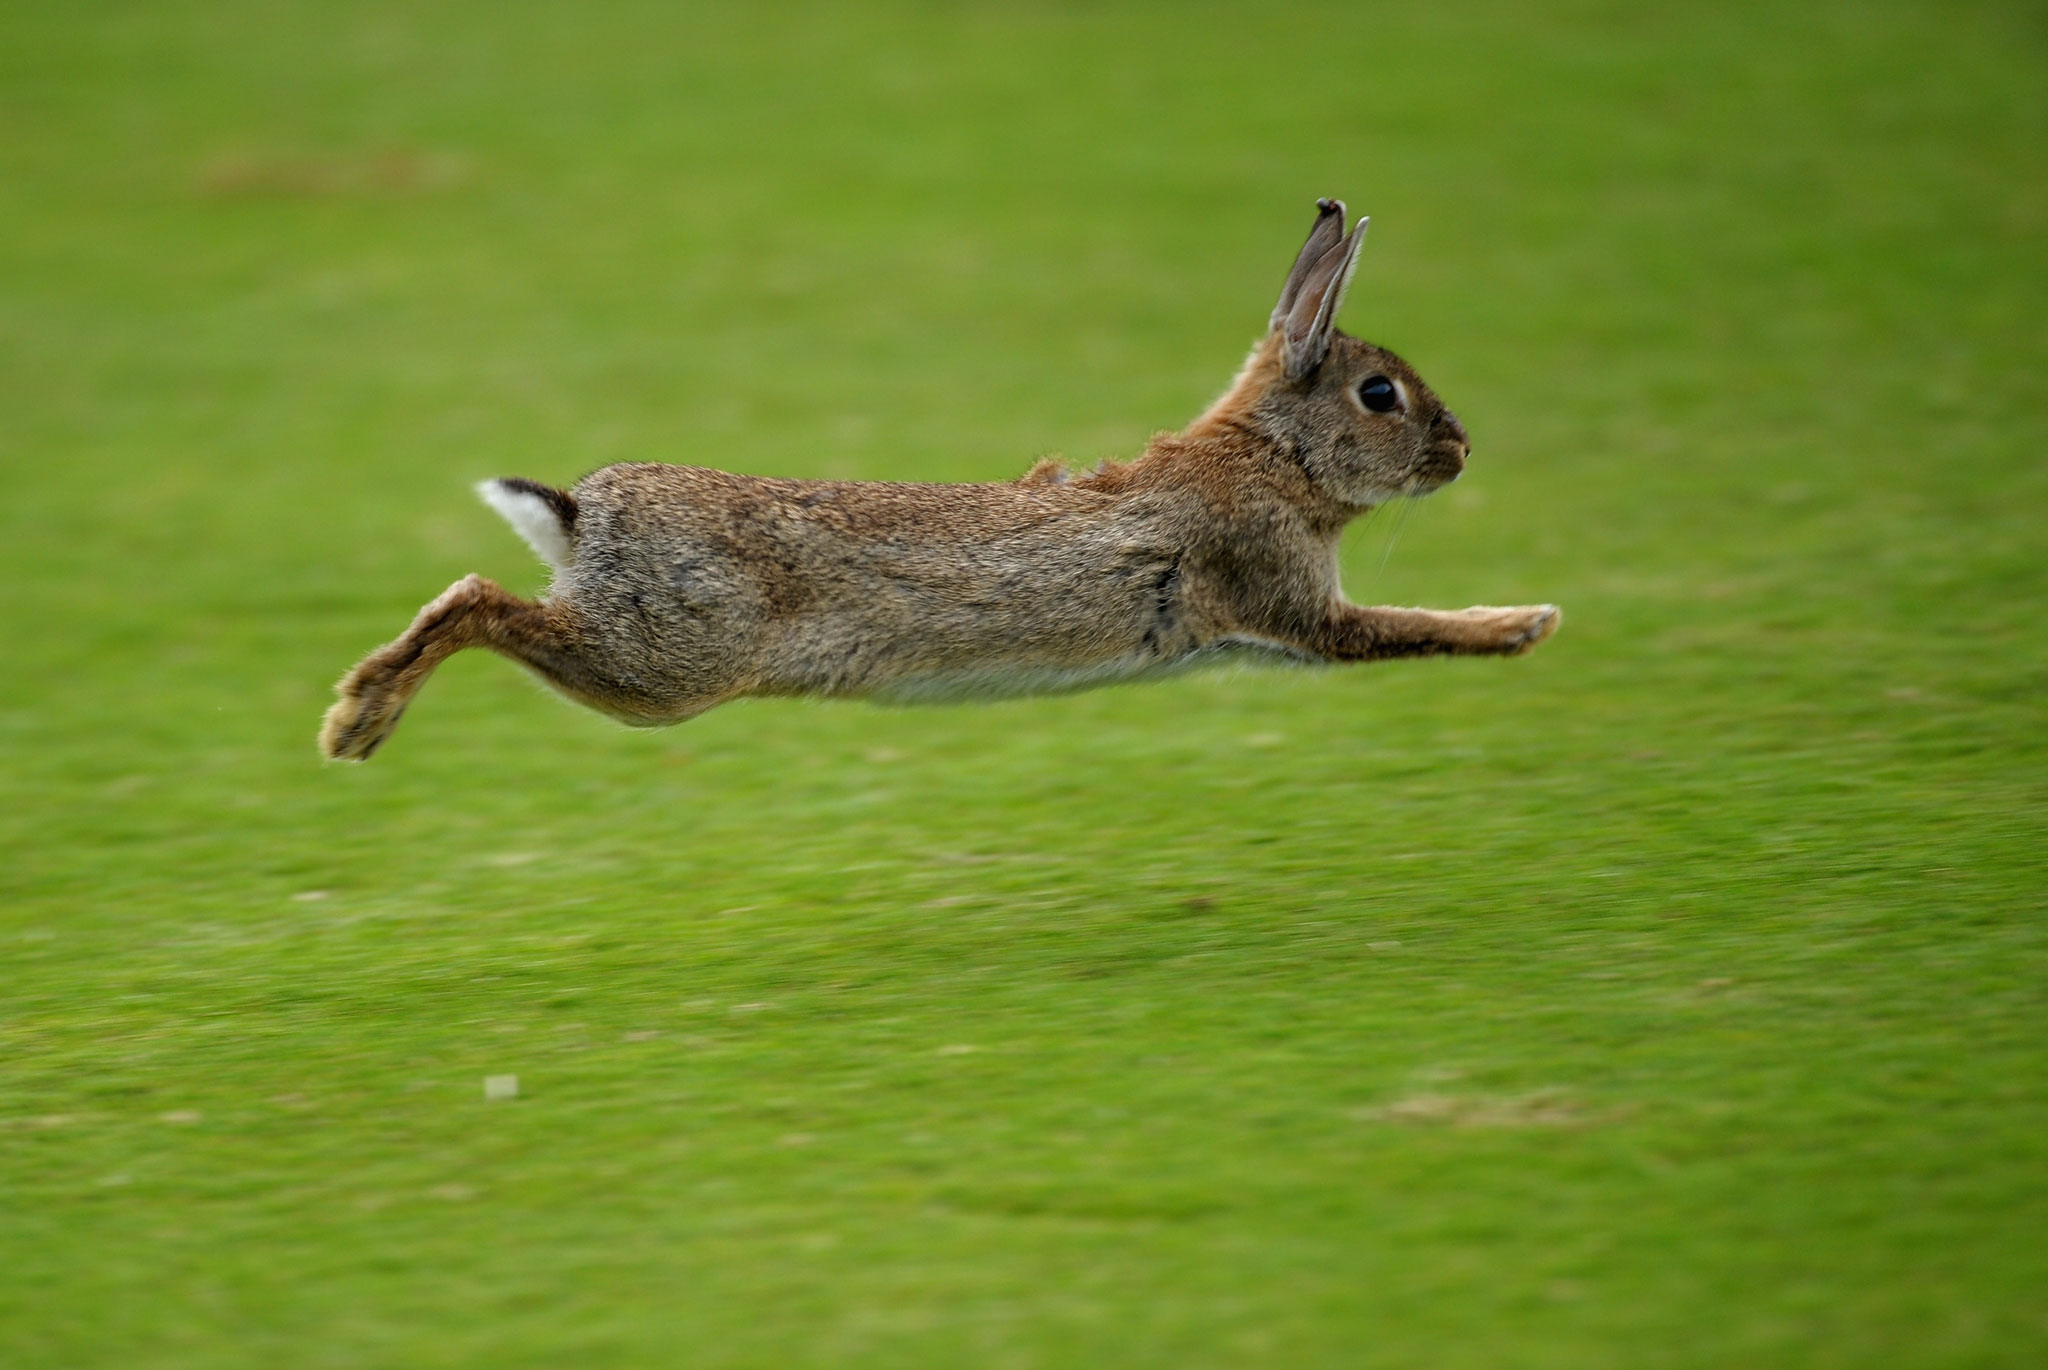 Useful Tips To Help You Arrest The Rabbit